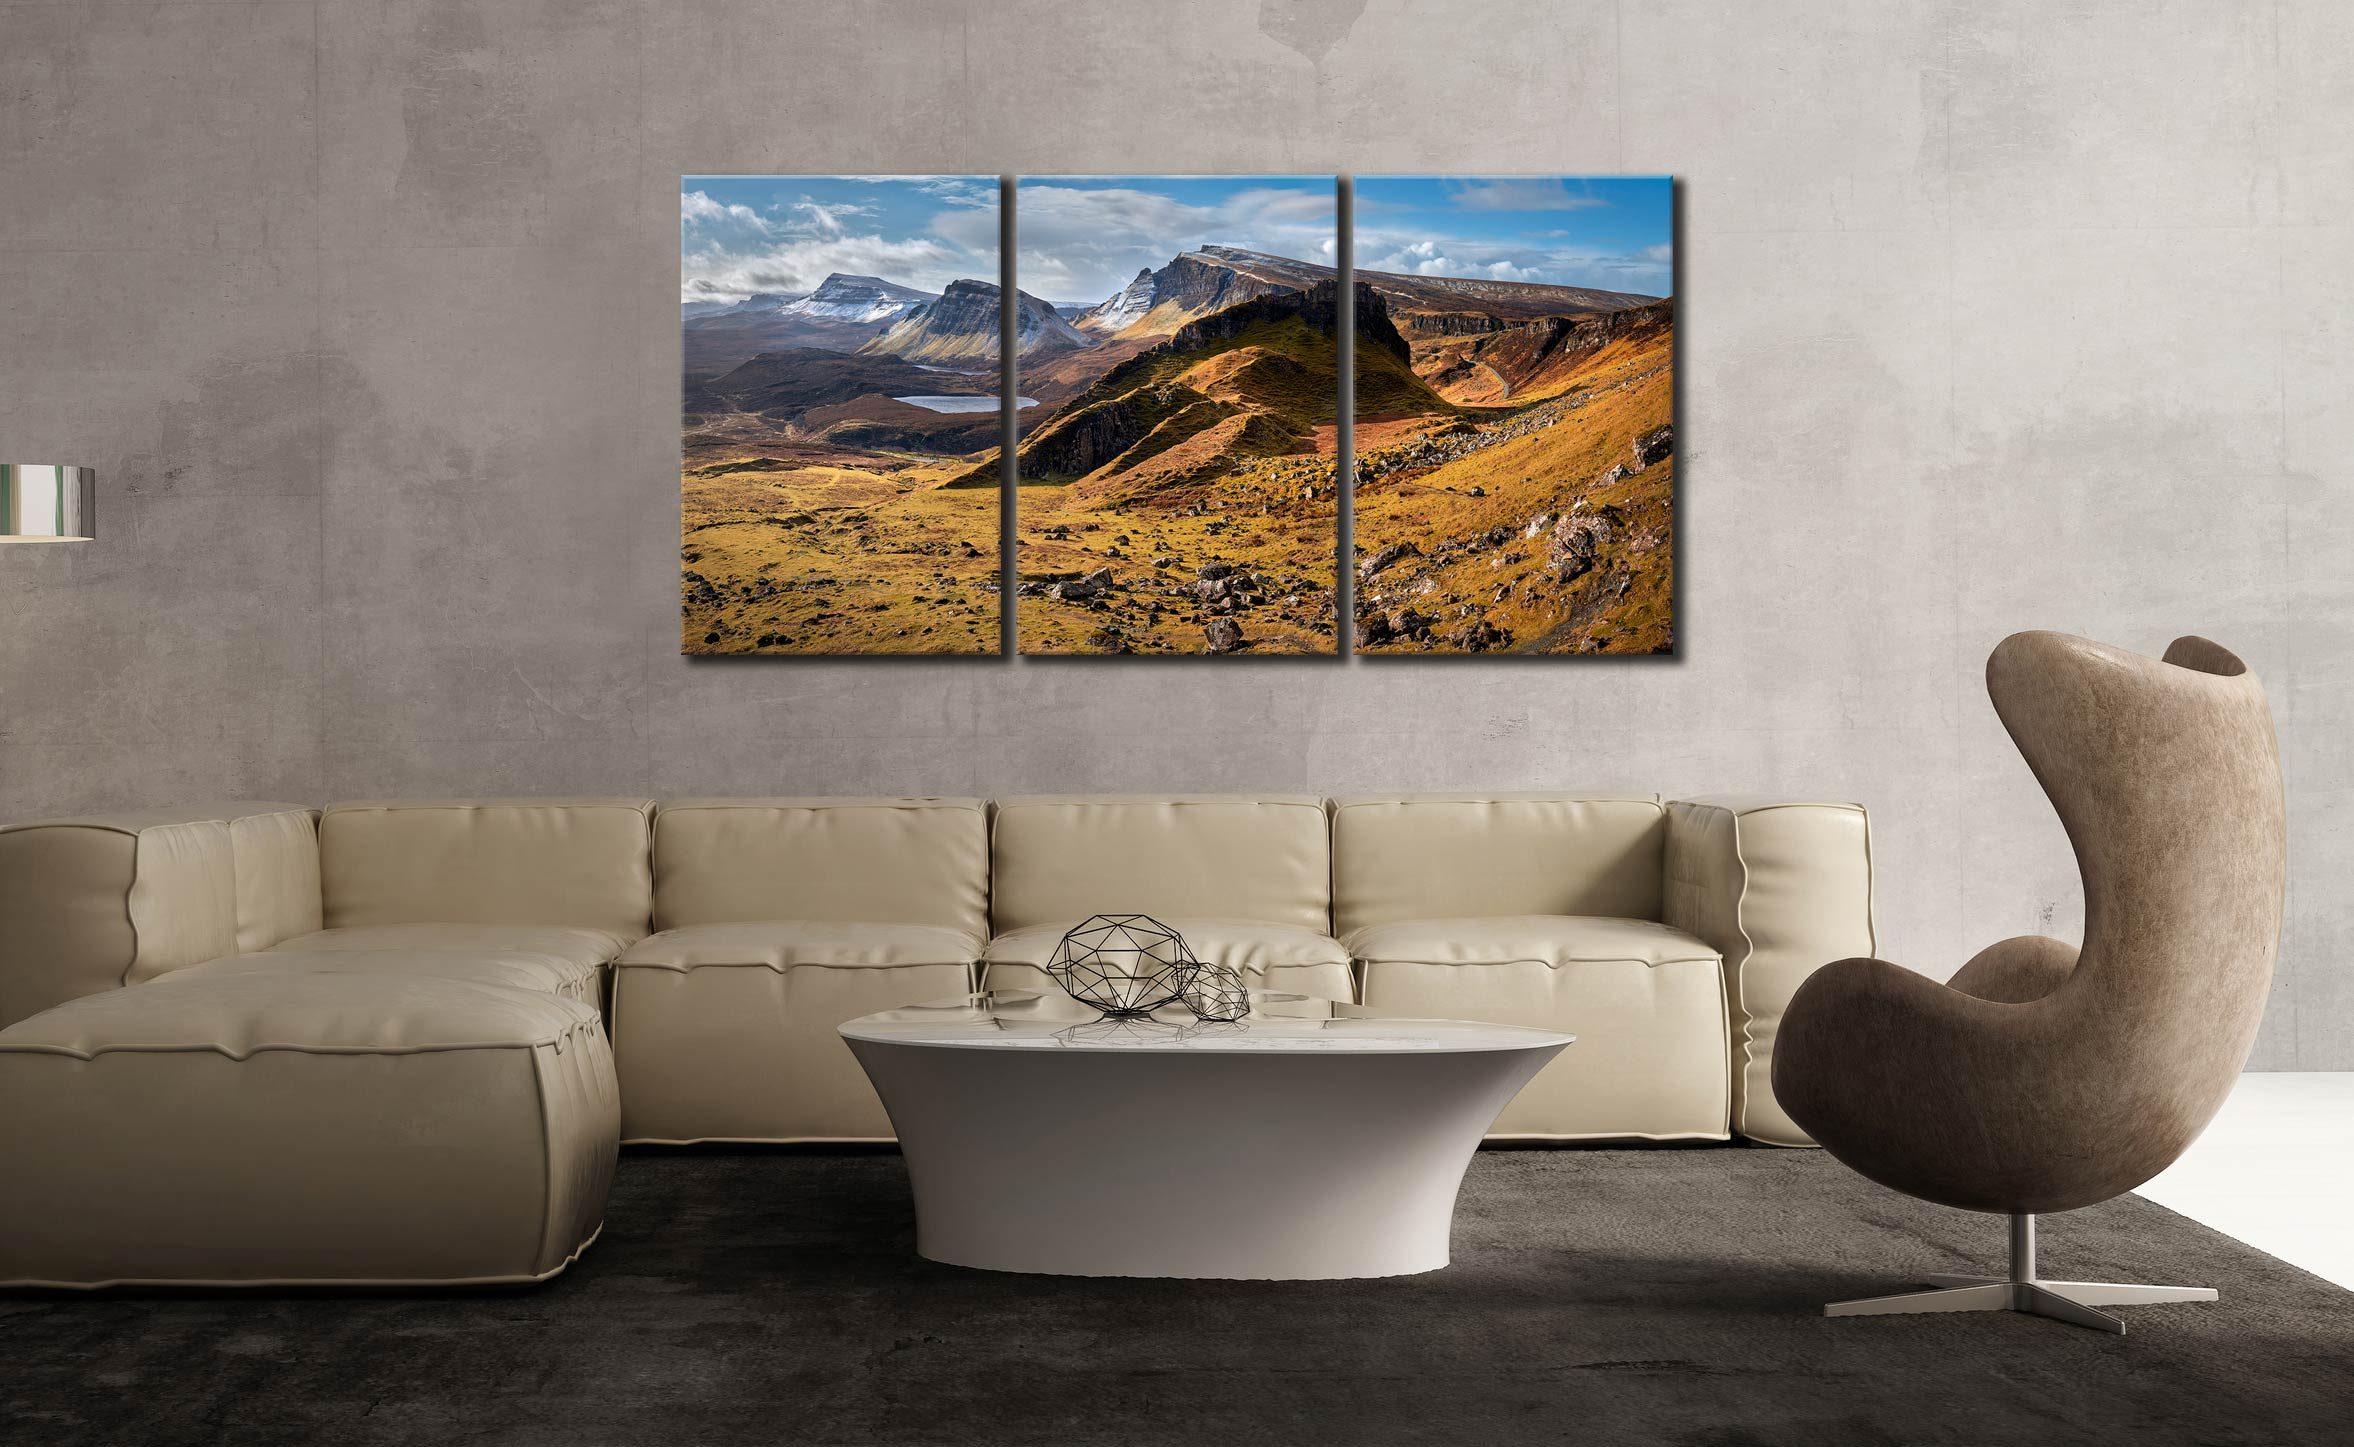 Quiraing Boulder Field - 3 Panel Canvas on Wall